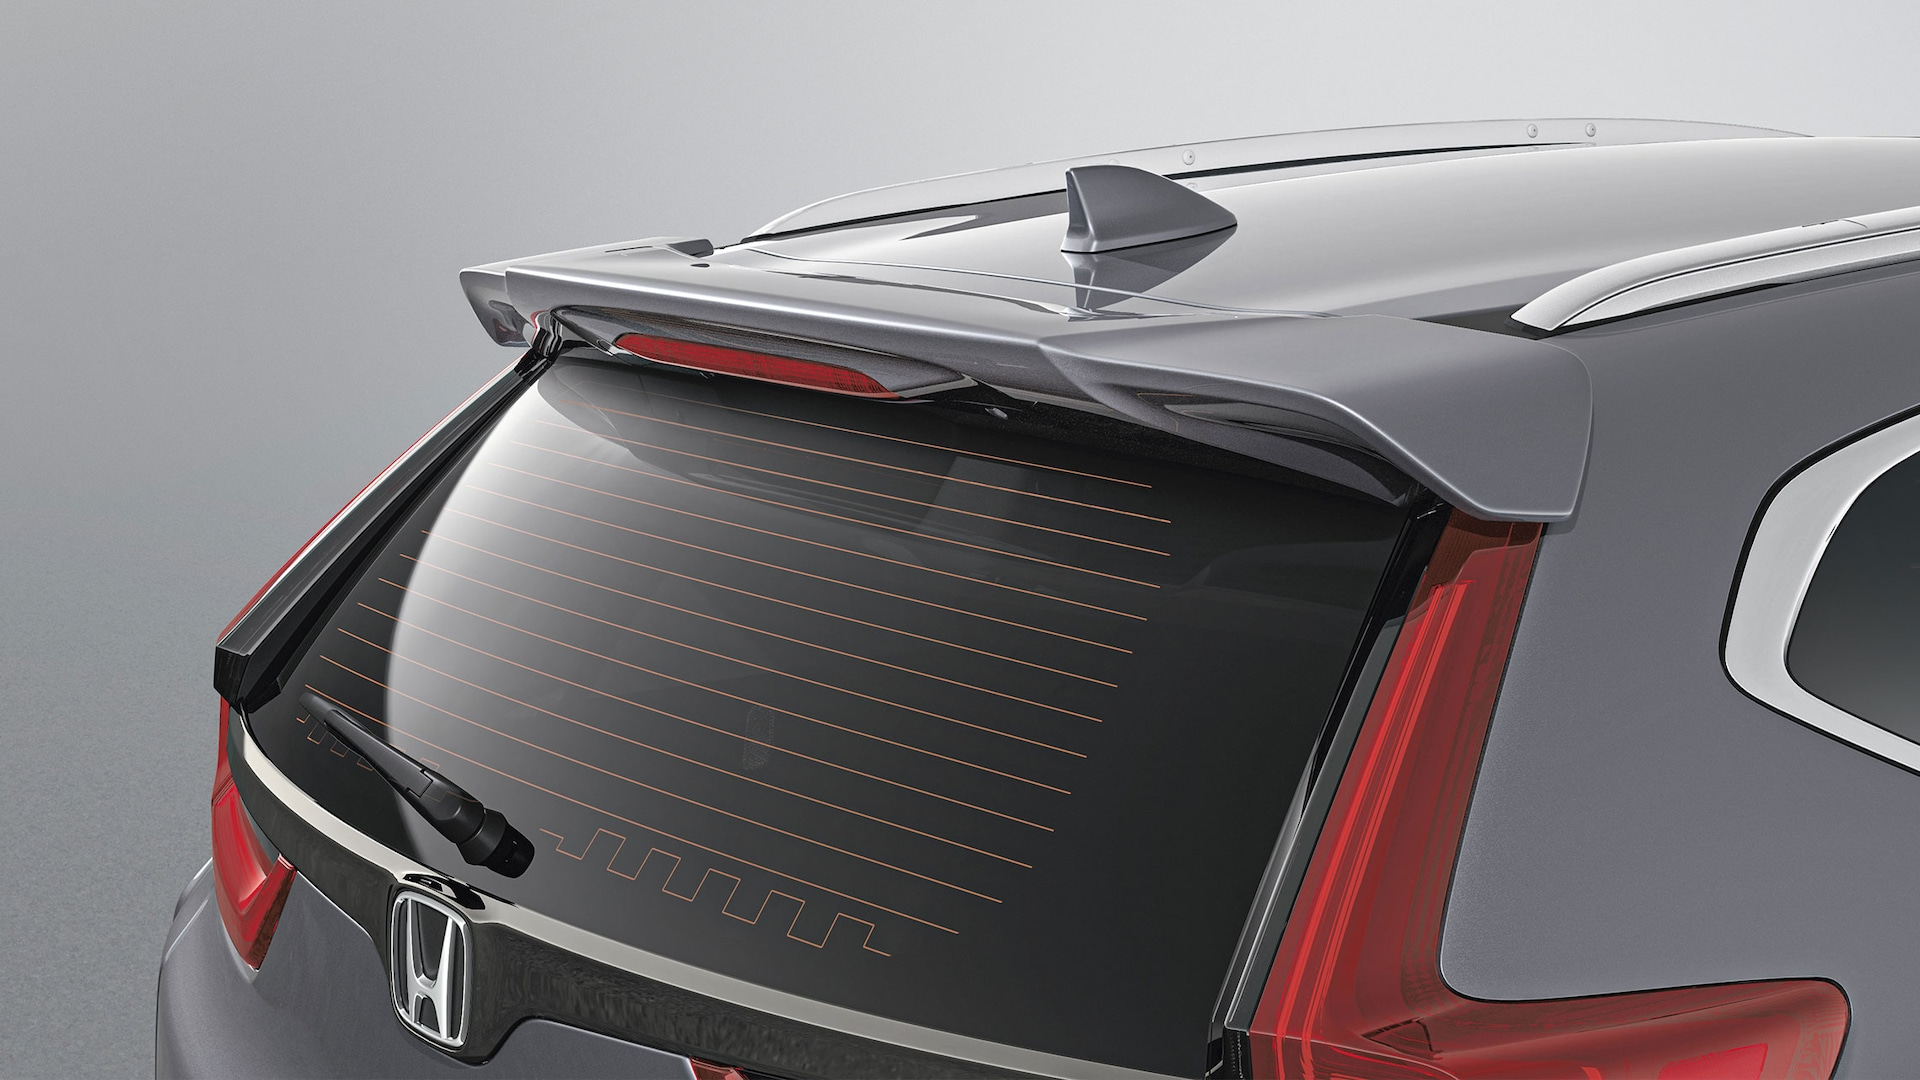 Detail of accessory tailgate spoiler on the 2021 Honda CR-V.